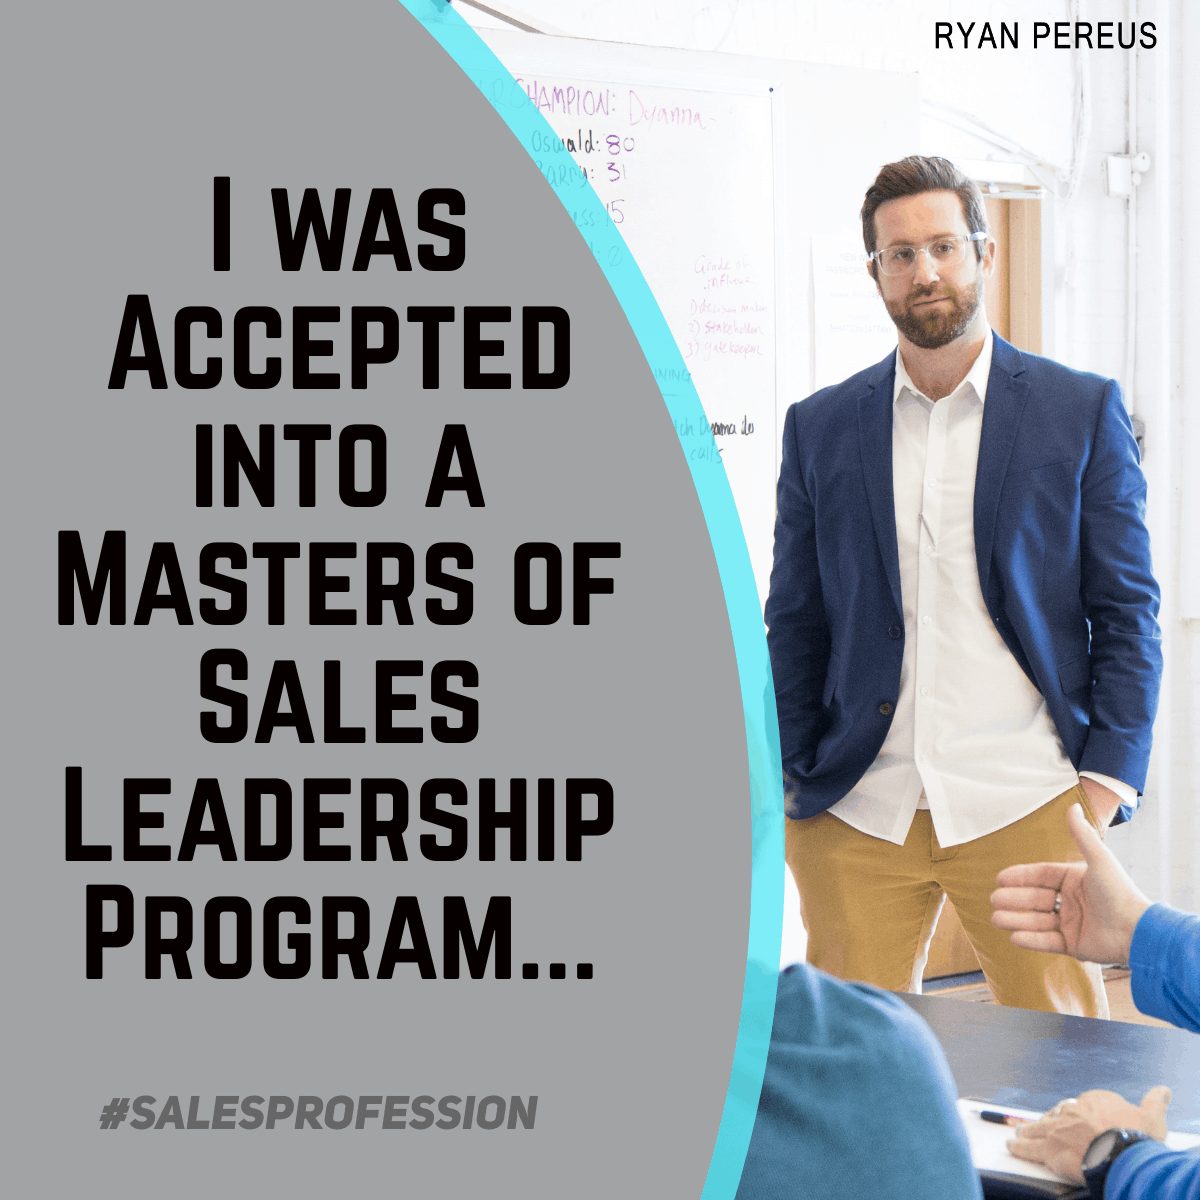 I was Accepted into a Masters of Sales Leadership Program…